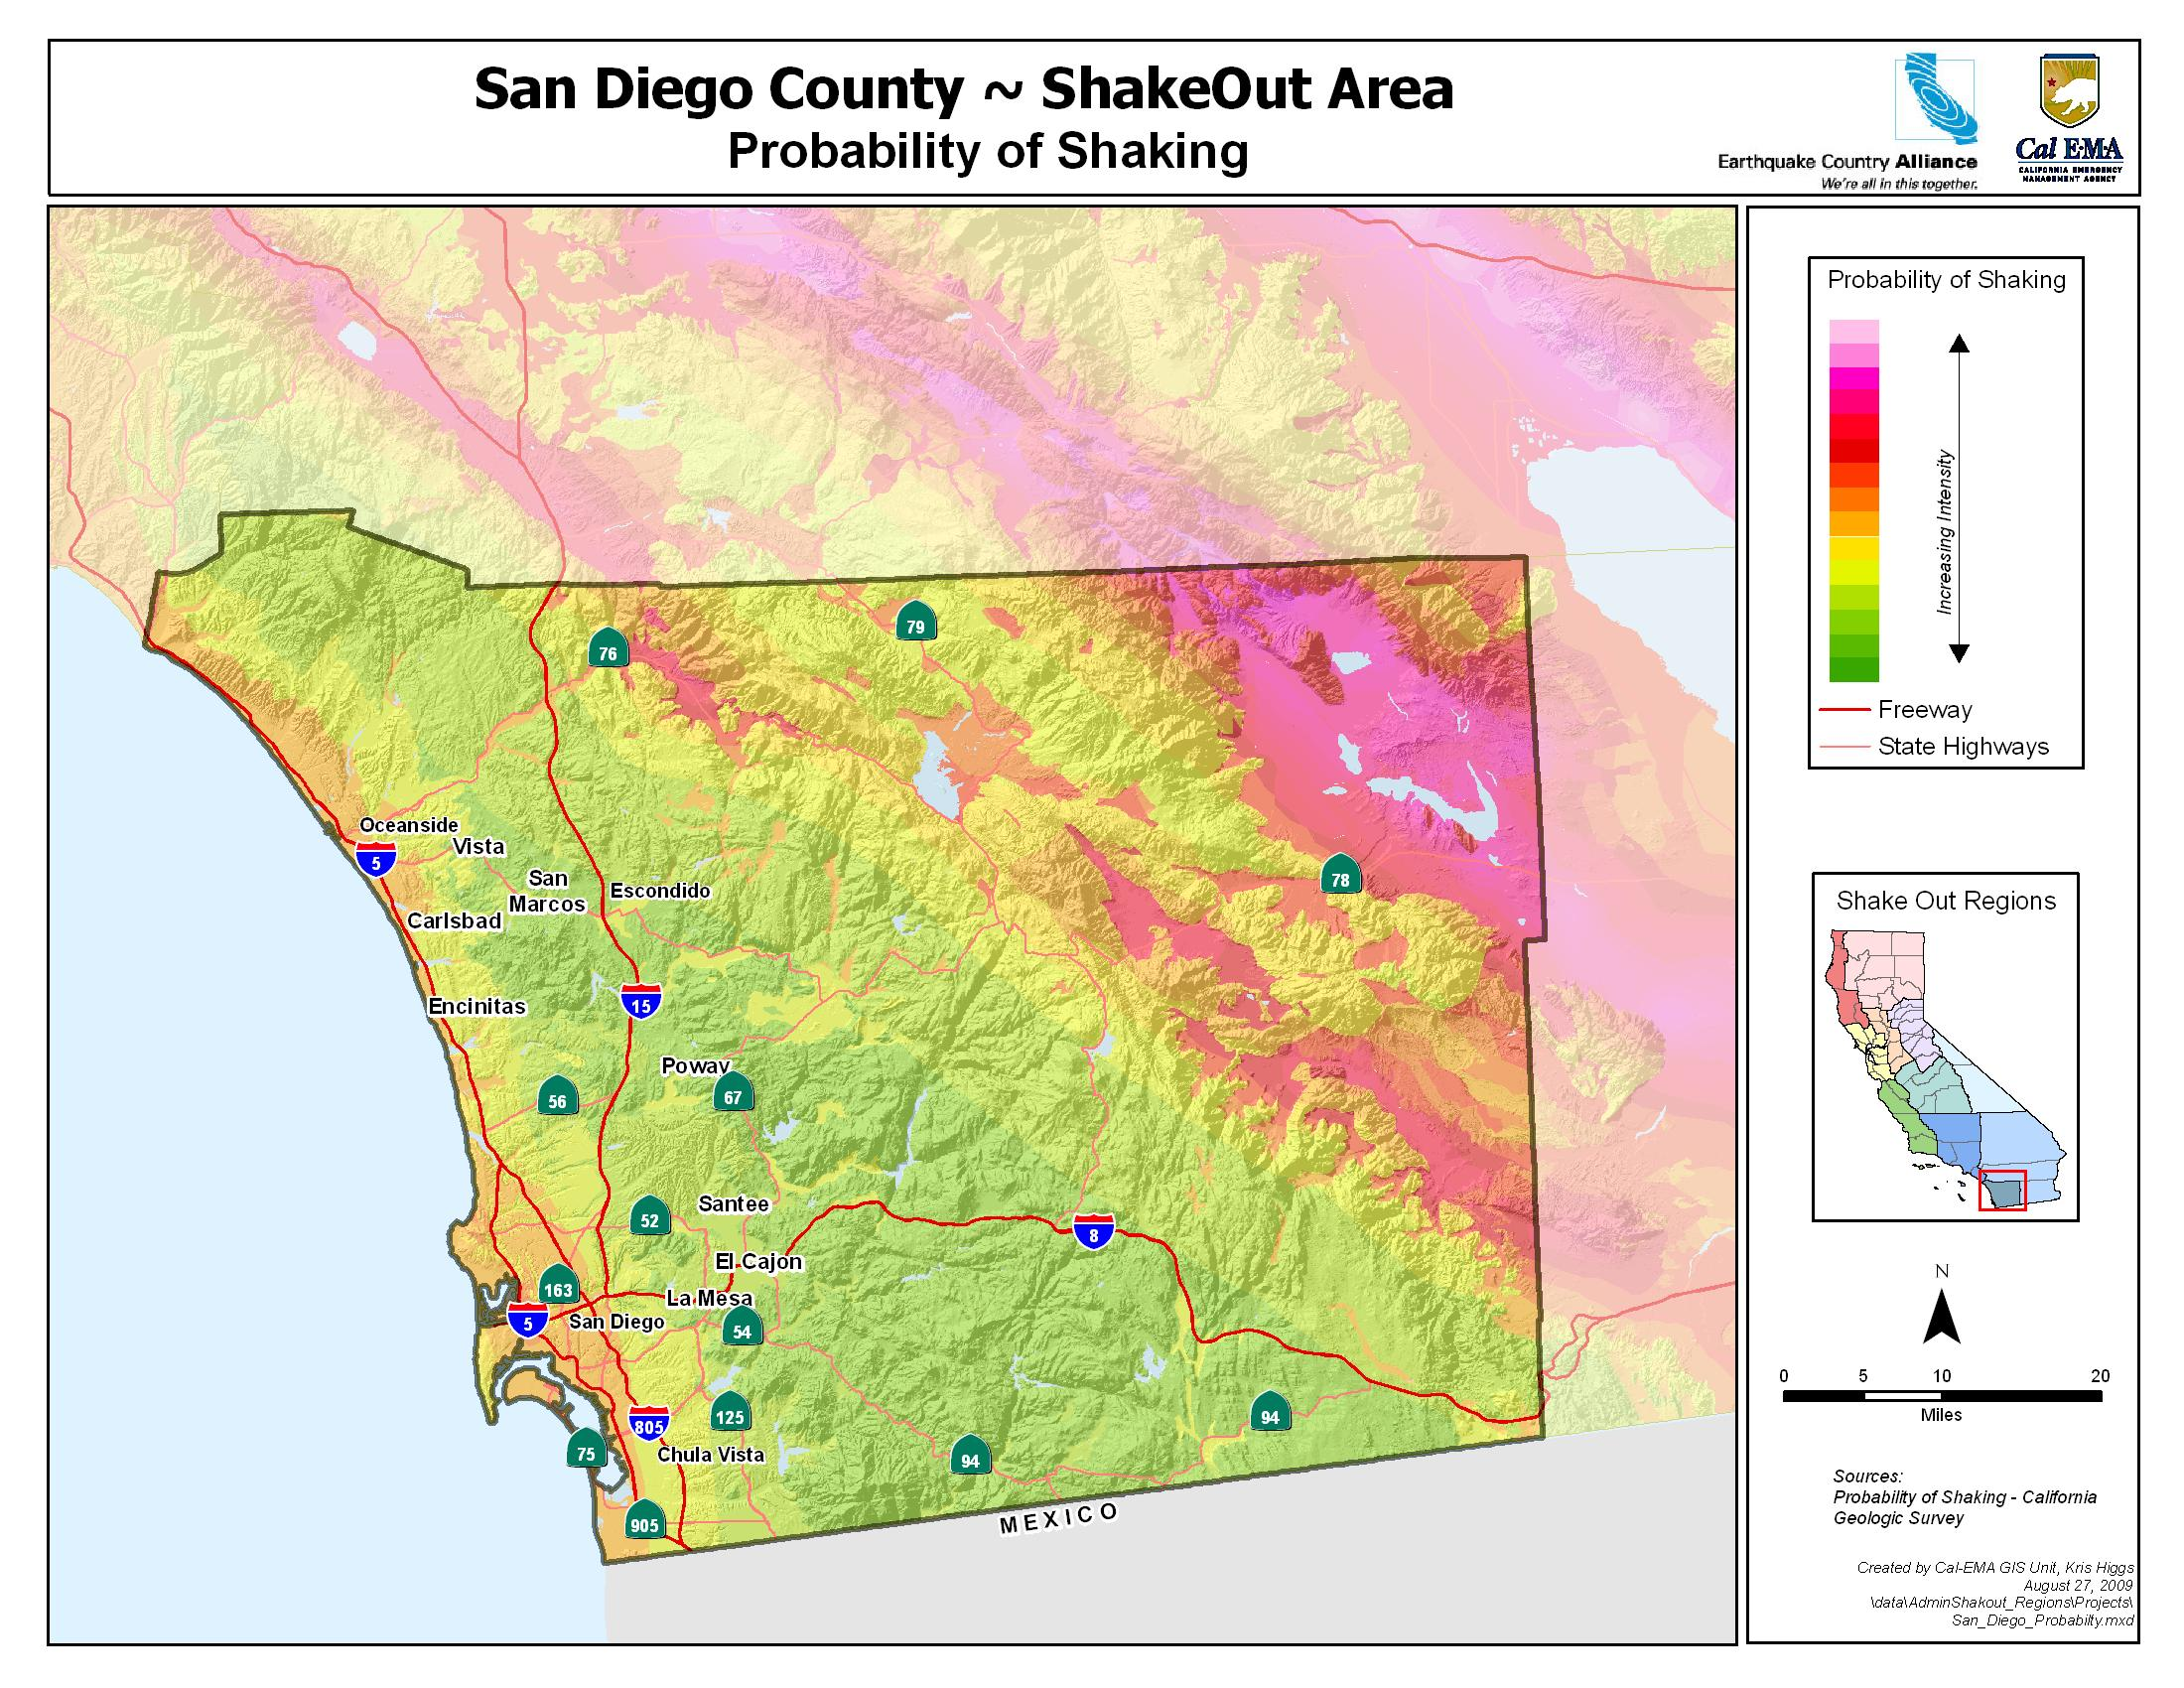 The Great California Shakeout San Diego County Earthquake Hazards